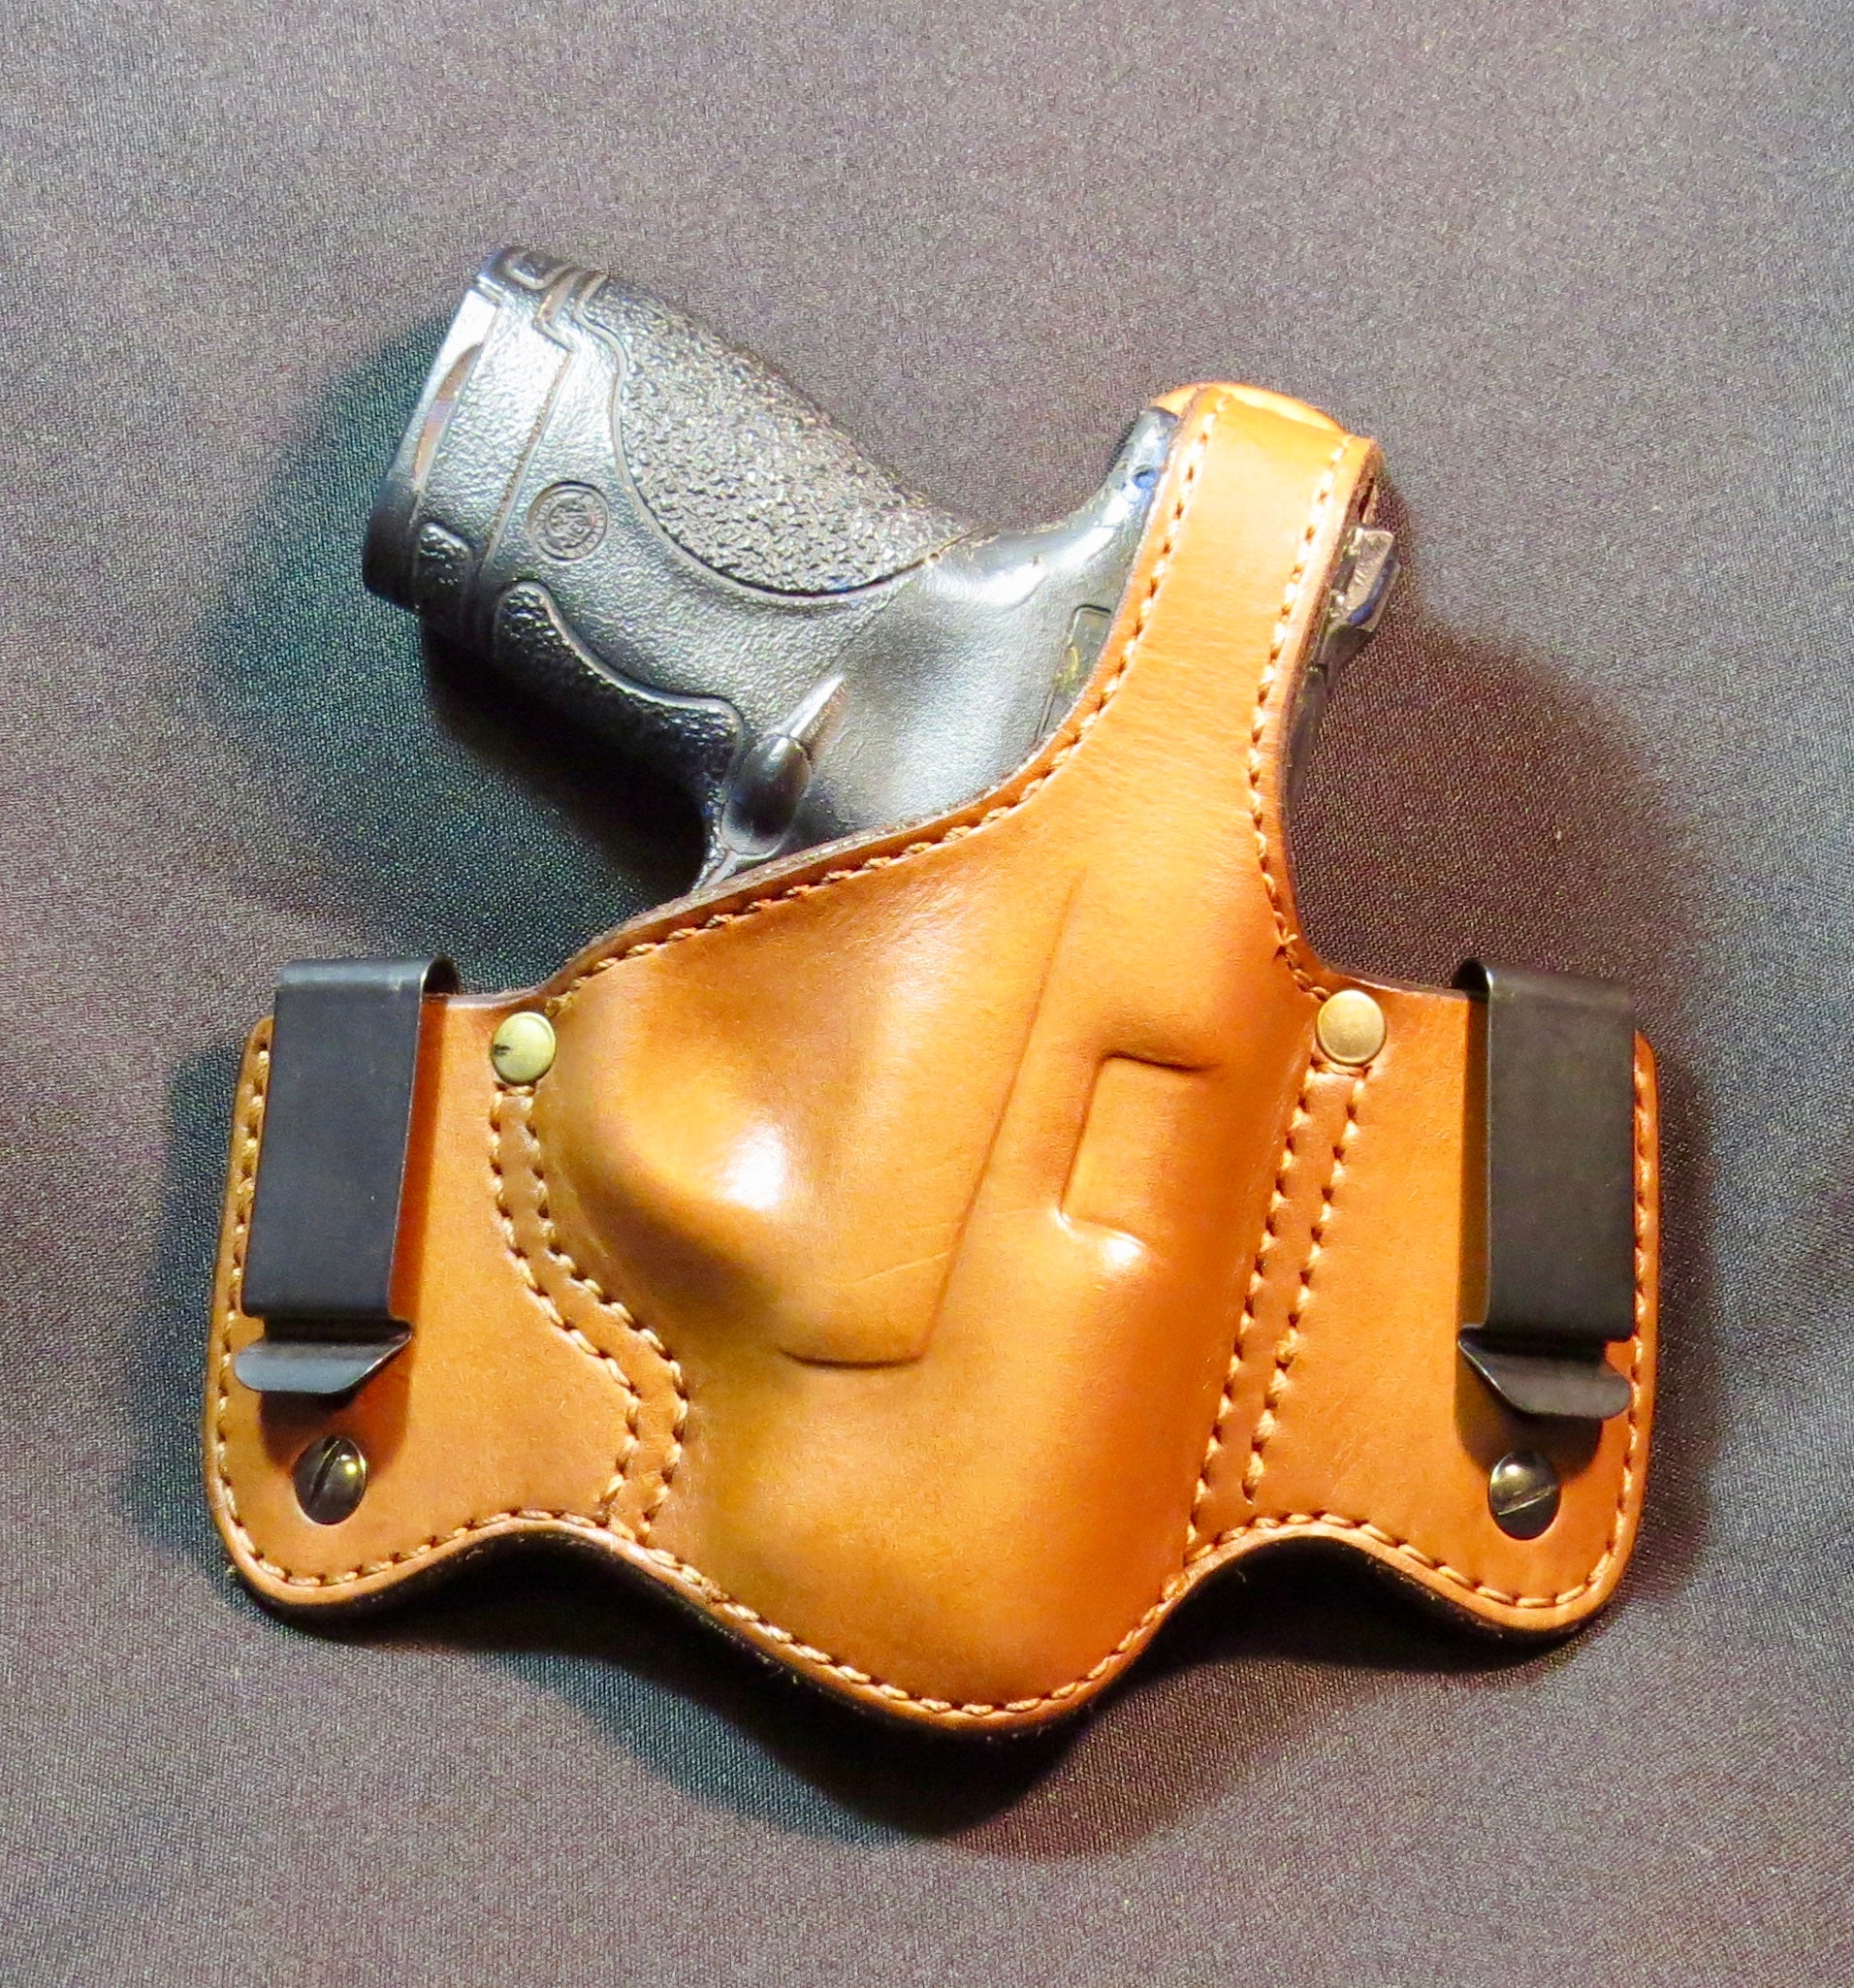 S&W M&P Sheild IWB or OWB Leather Holster with Thumb Break